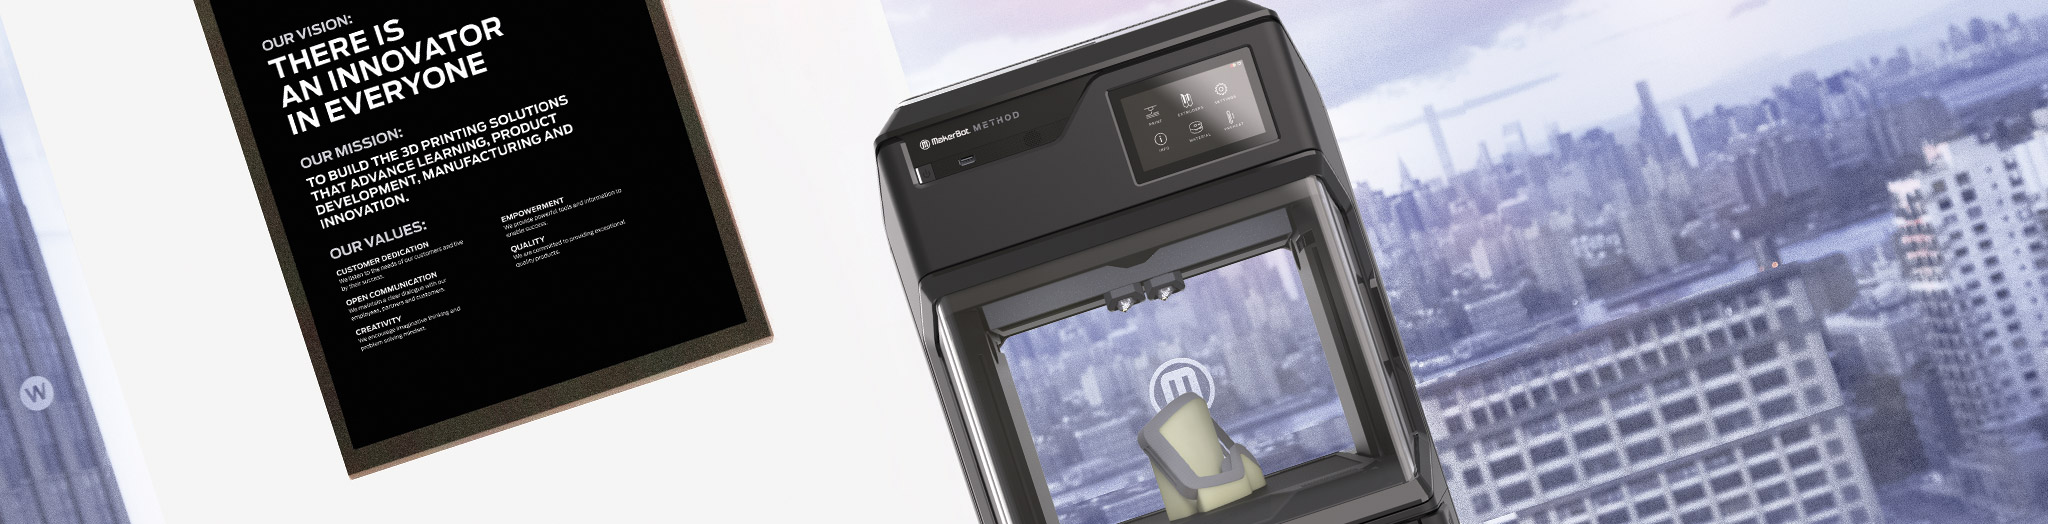 MakerBot Method – There is an innovator in everyone